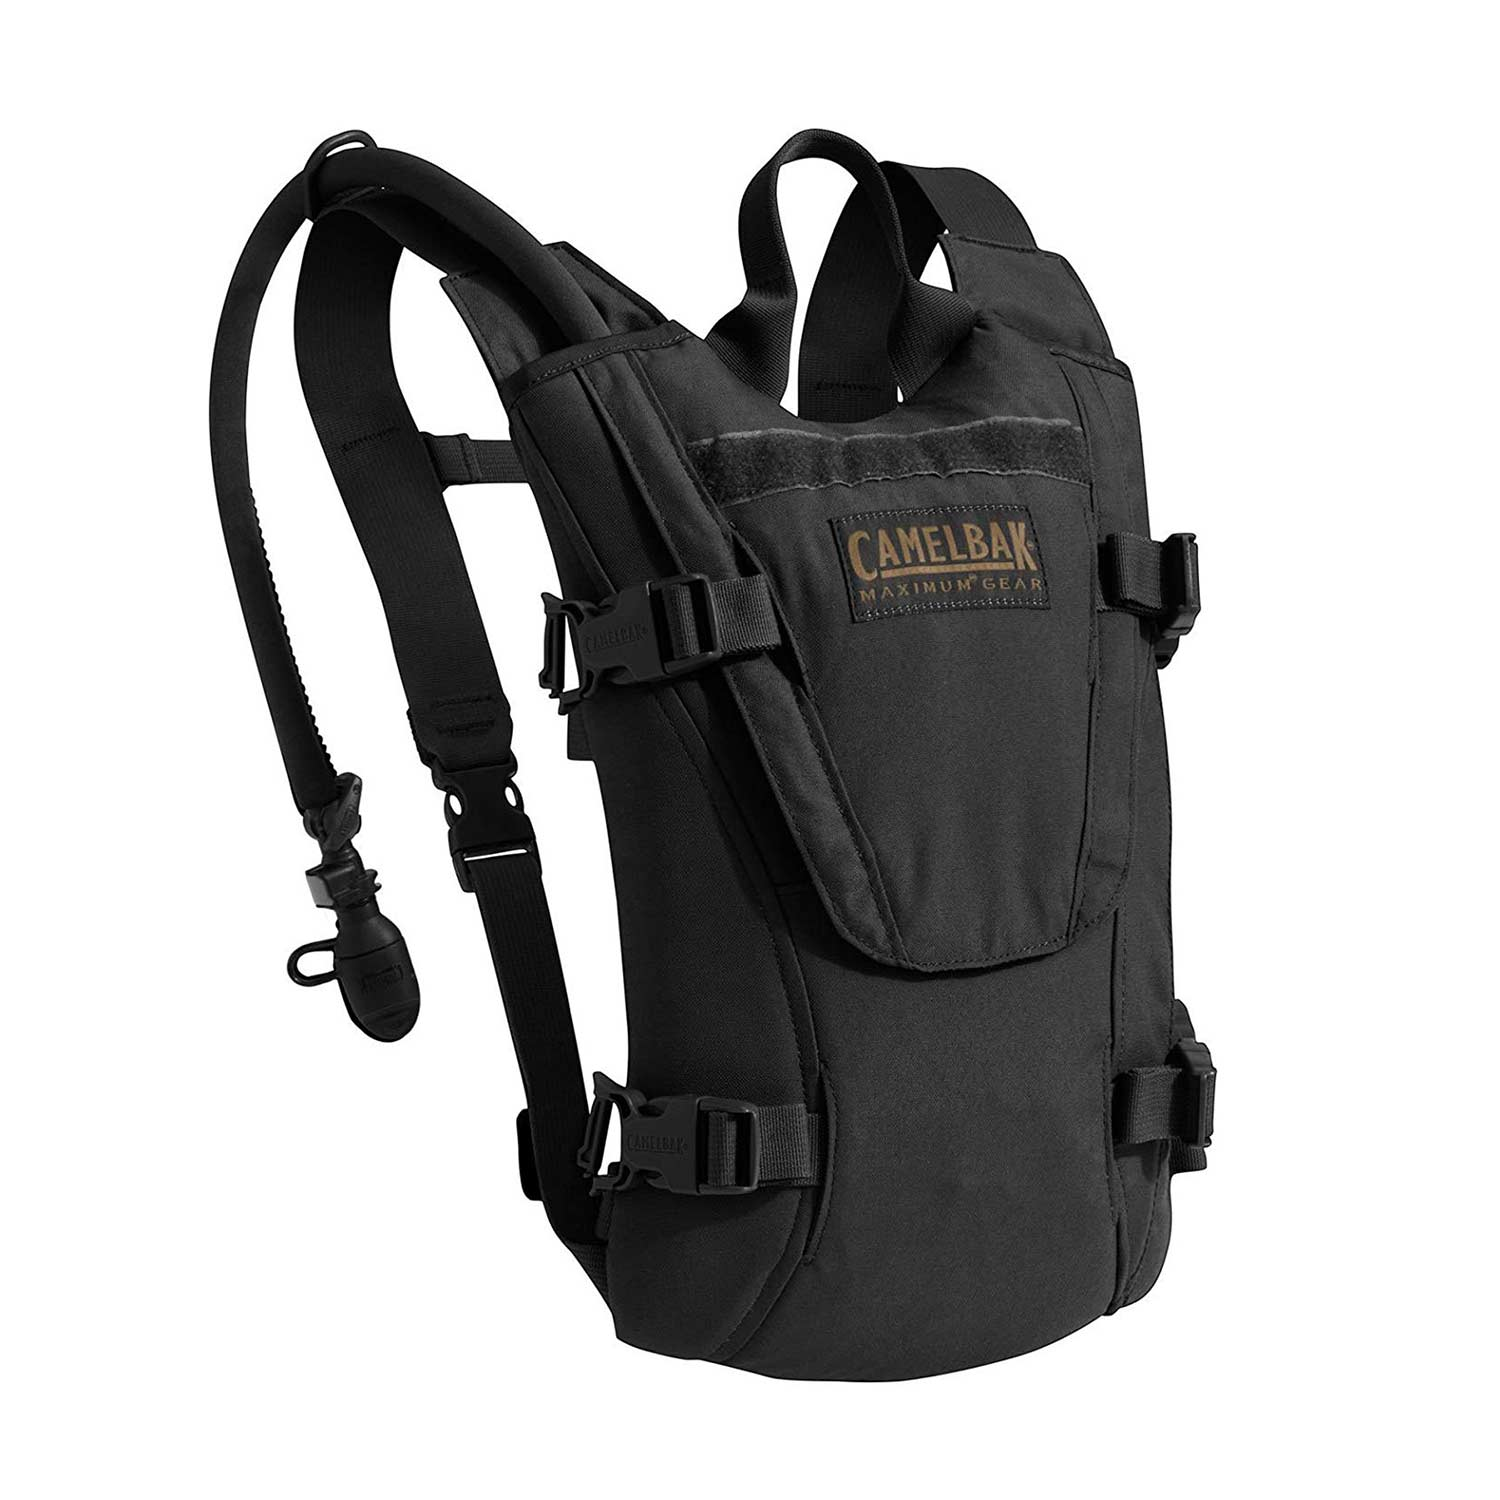 CamelBak ThermoBak AB 3 Liter Hydration Pack